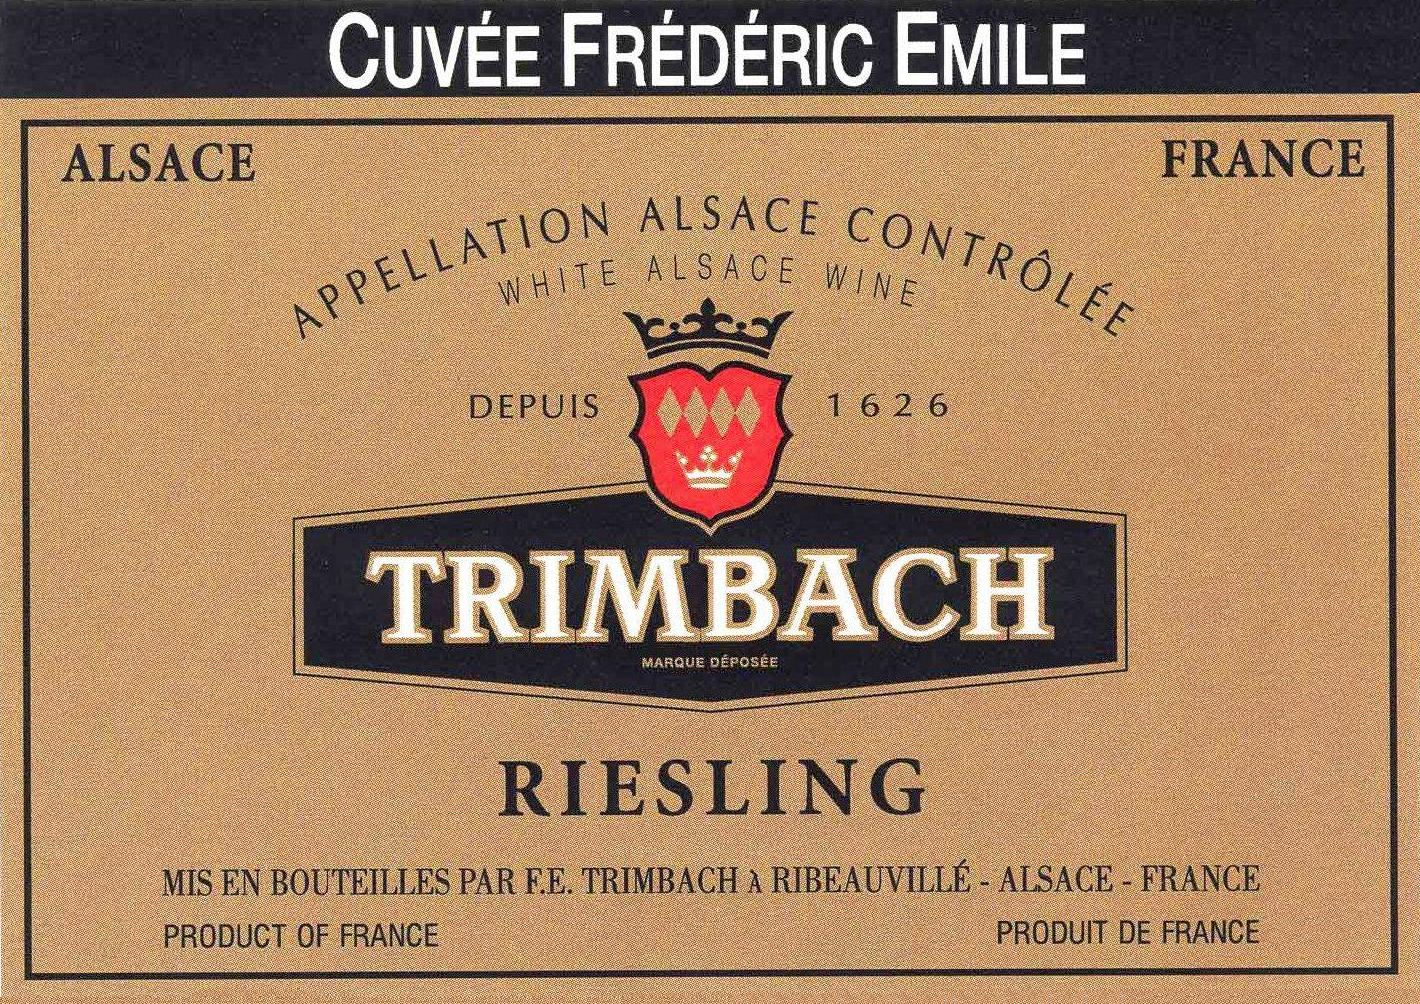 Trimbach Cuvee Frederic Emile Riesling 2011 Front Label